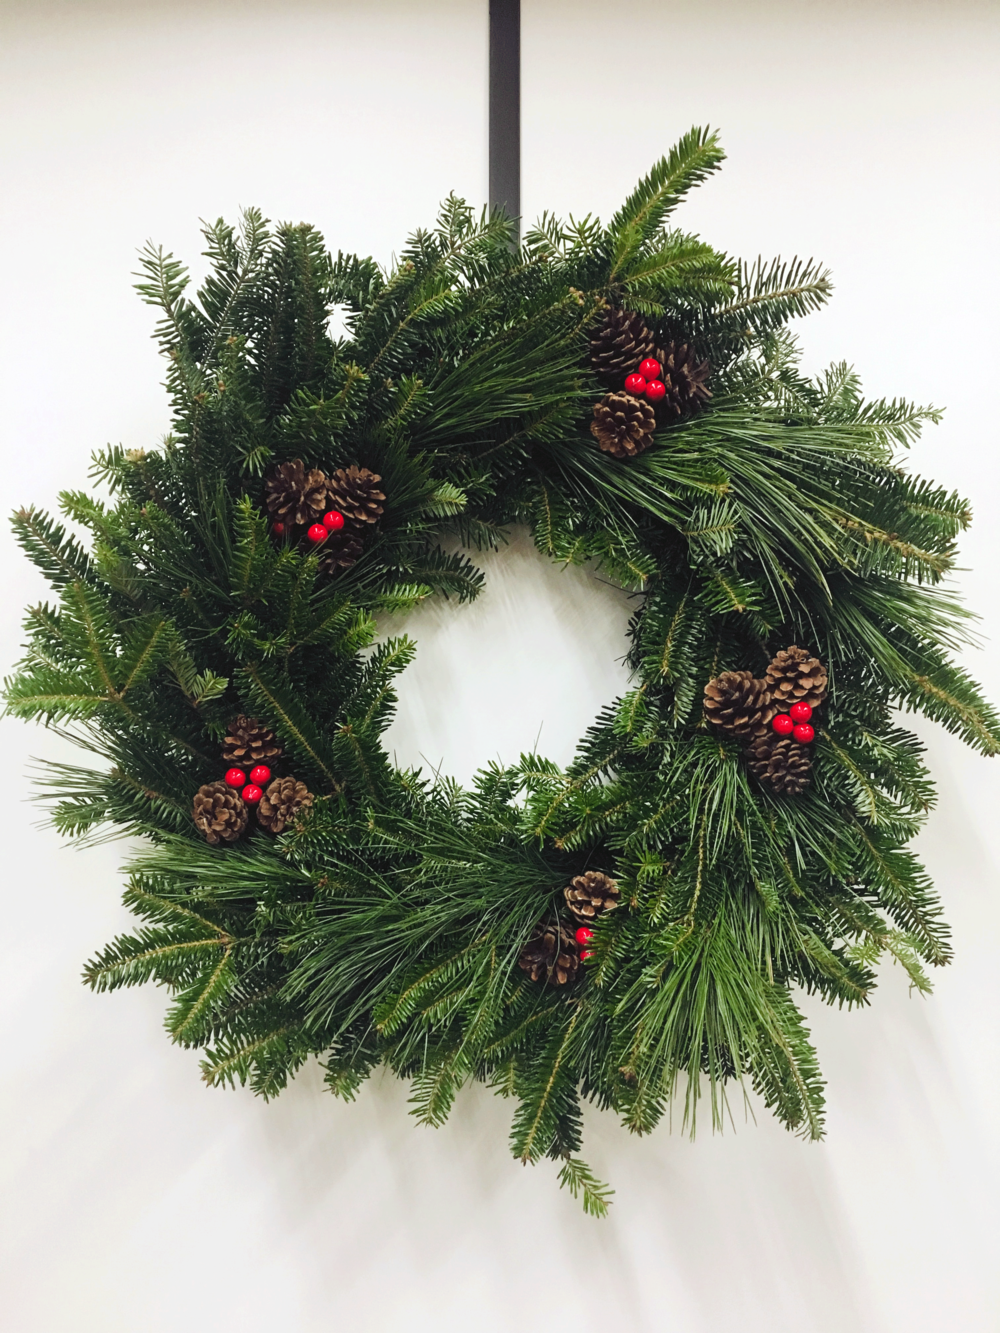 WREATH WITHERSPOON - small: $30 | large: $35